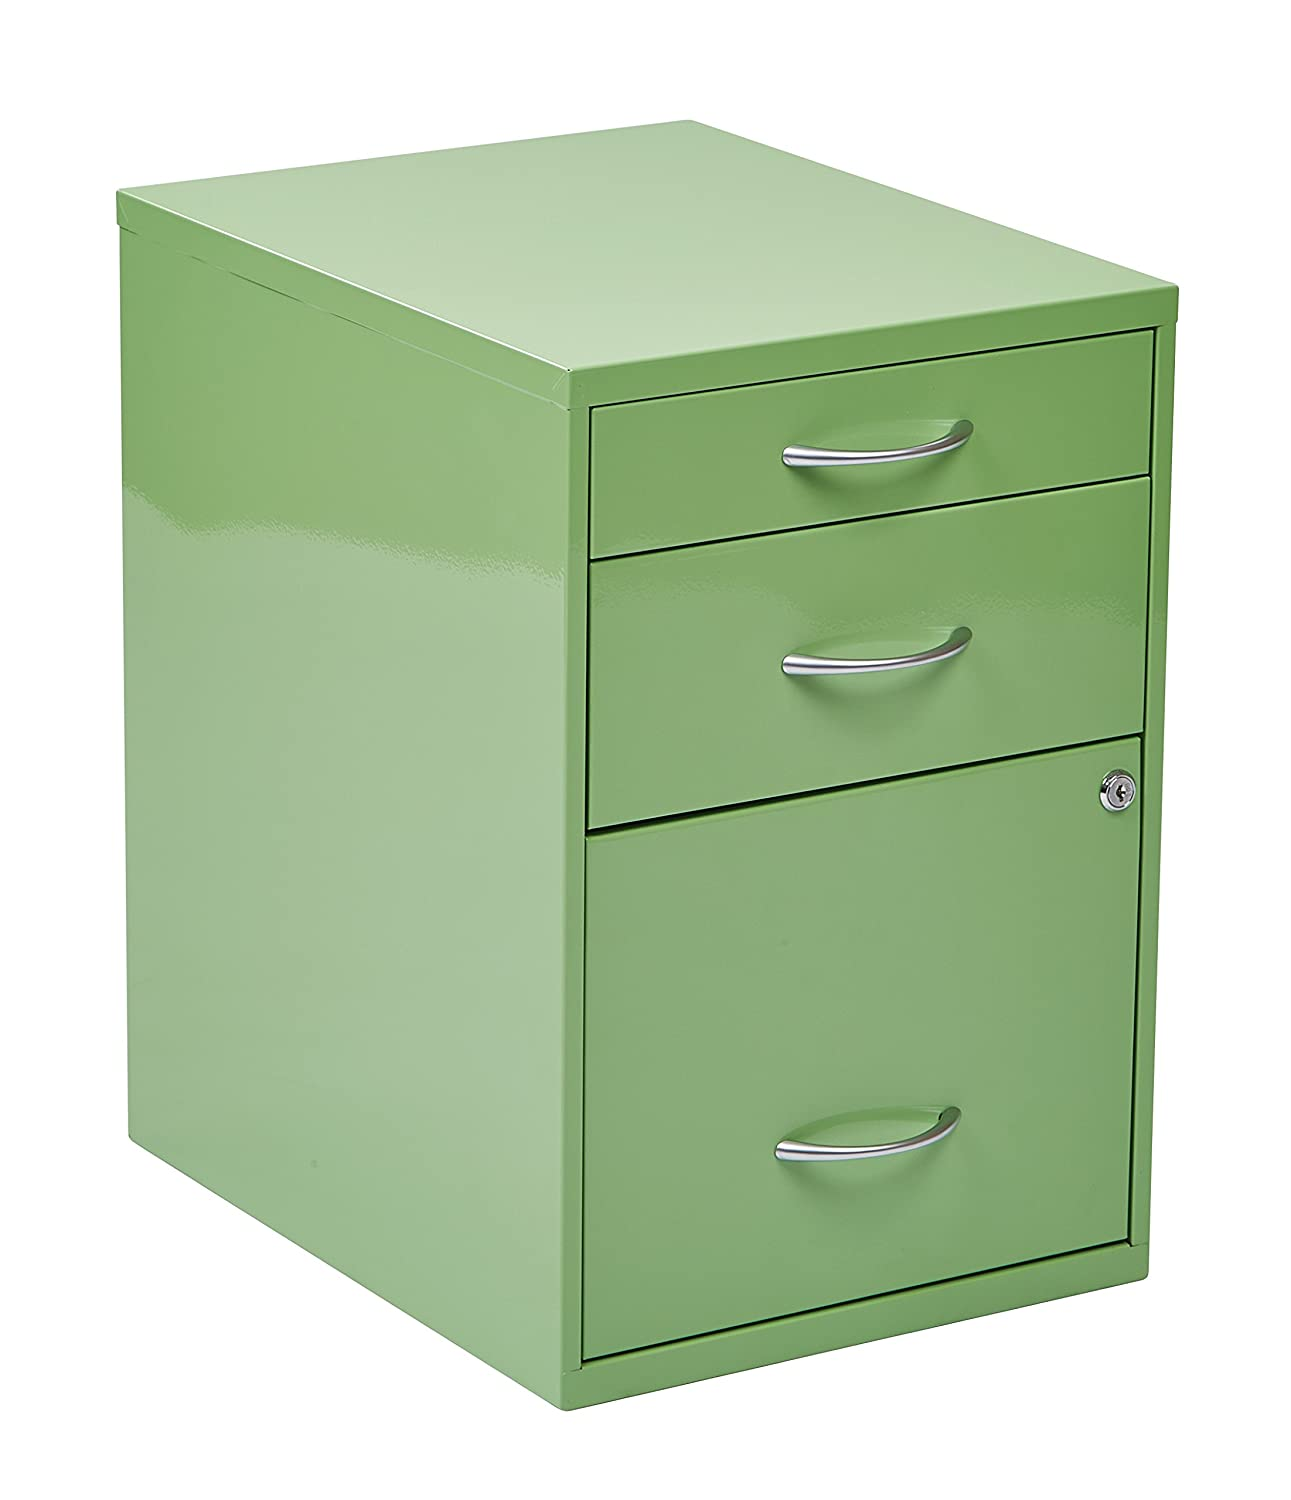 Green File Cabinet Amazoncom Osp Designs Hpbf6 22 Pencil Box And Storage File